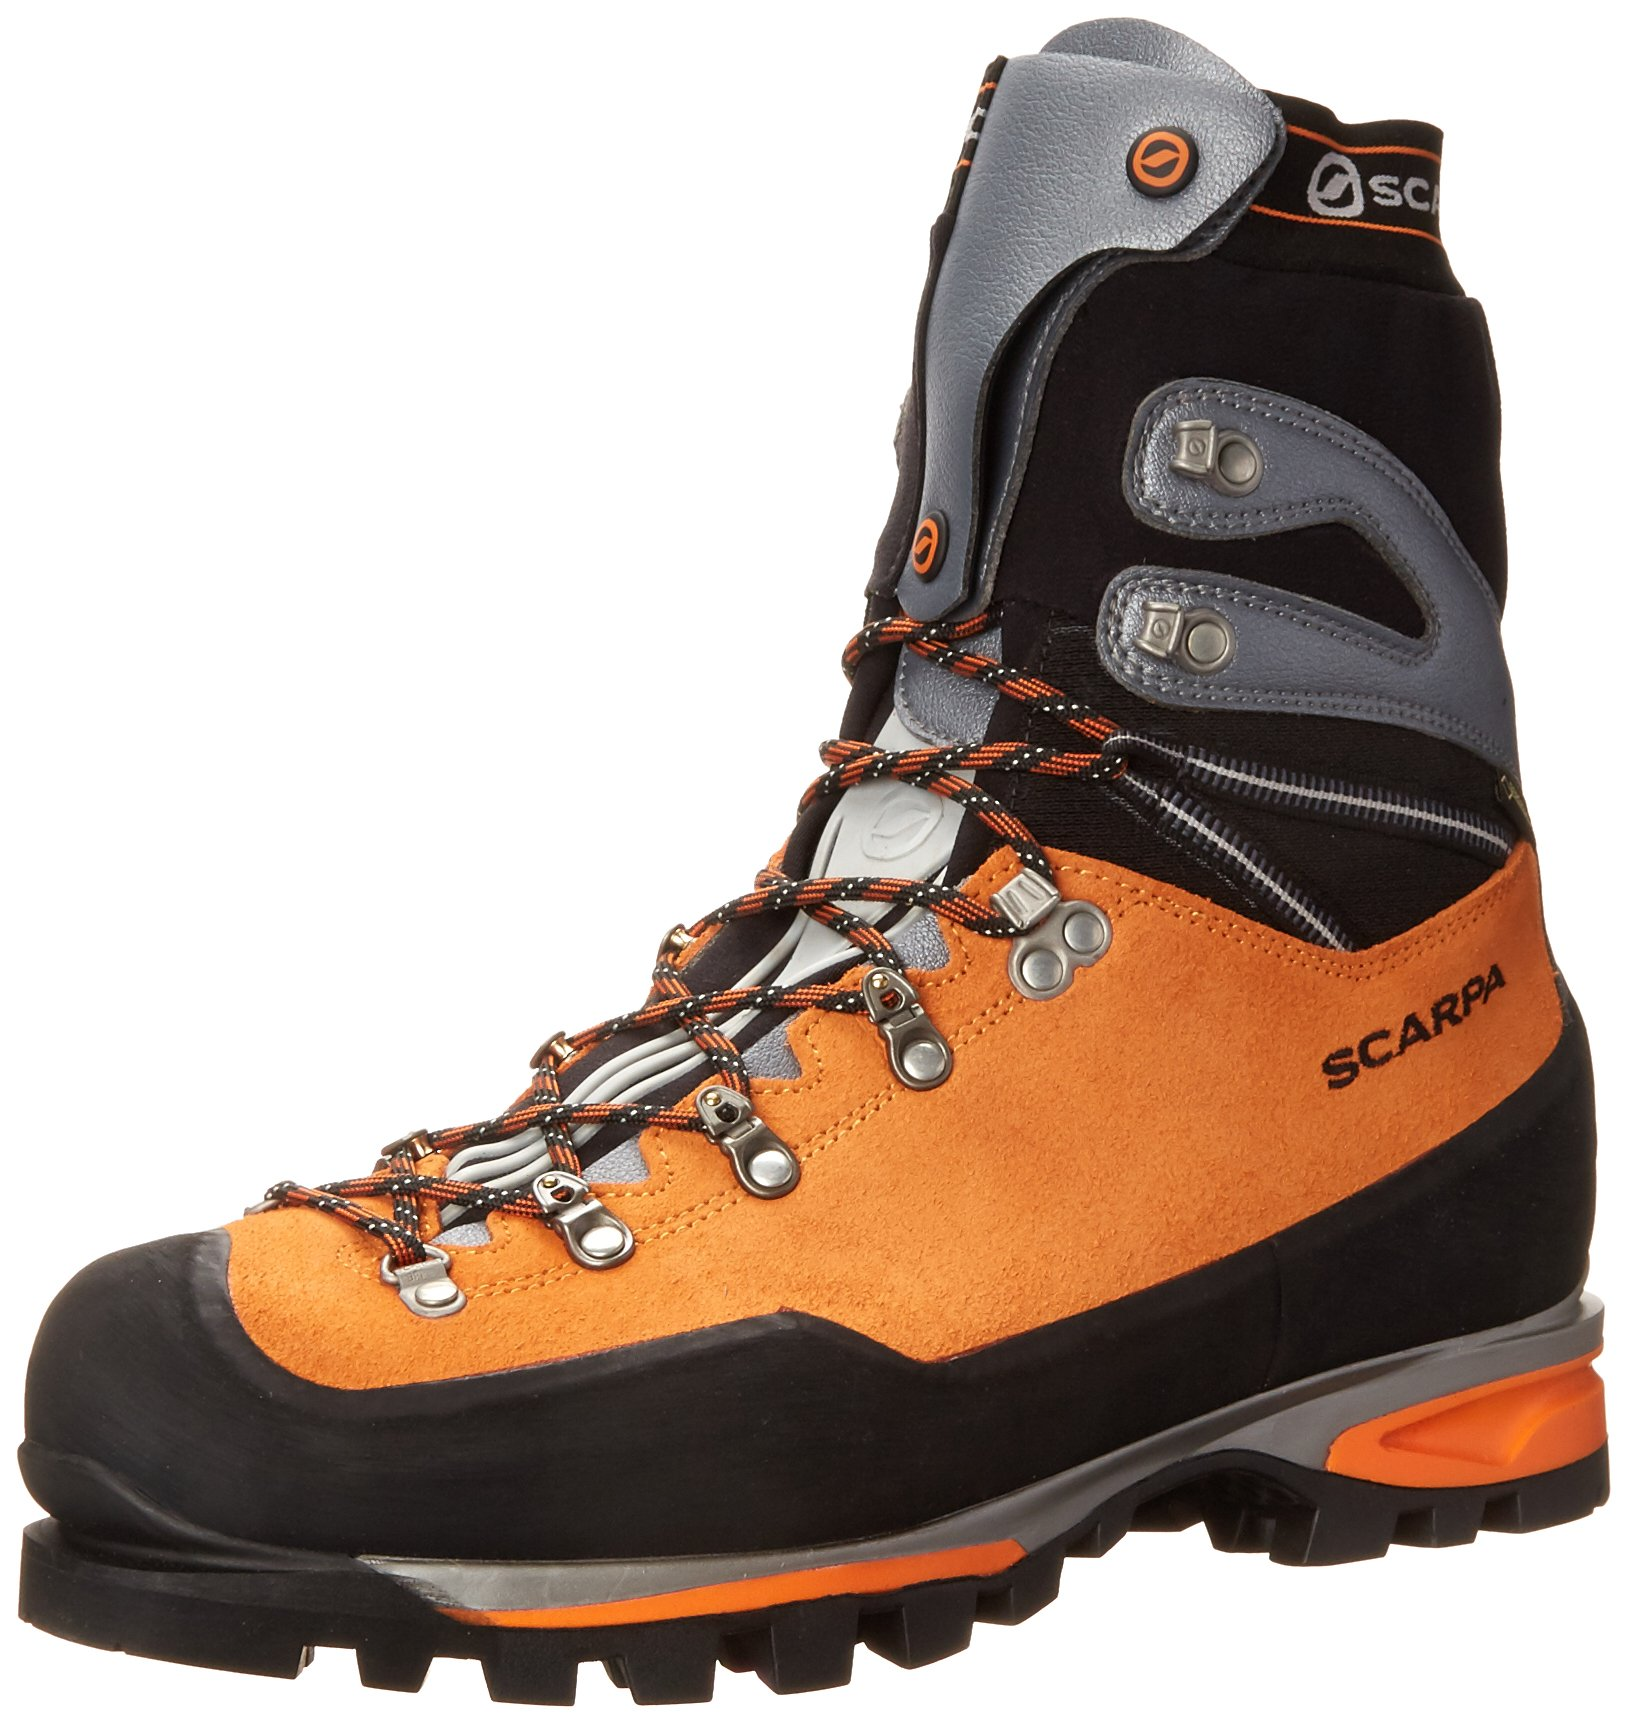 Scarpa Men's Mont Blanc Pro GTX Mountaineering Boot, Orange, 44.5 EU/11 M US